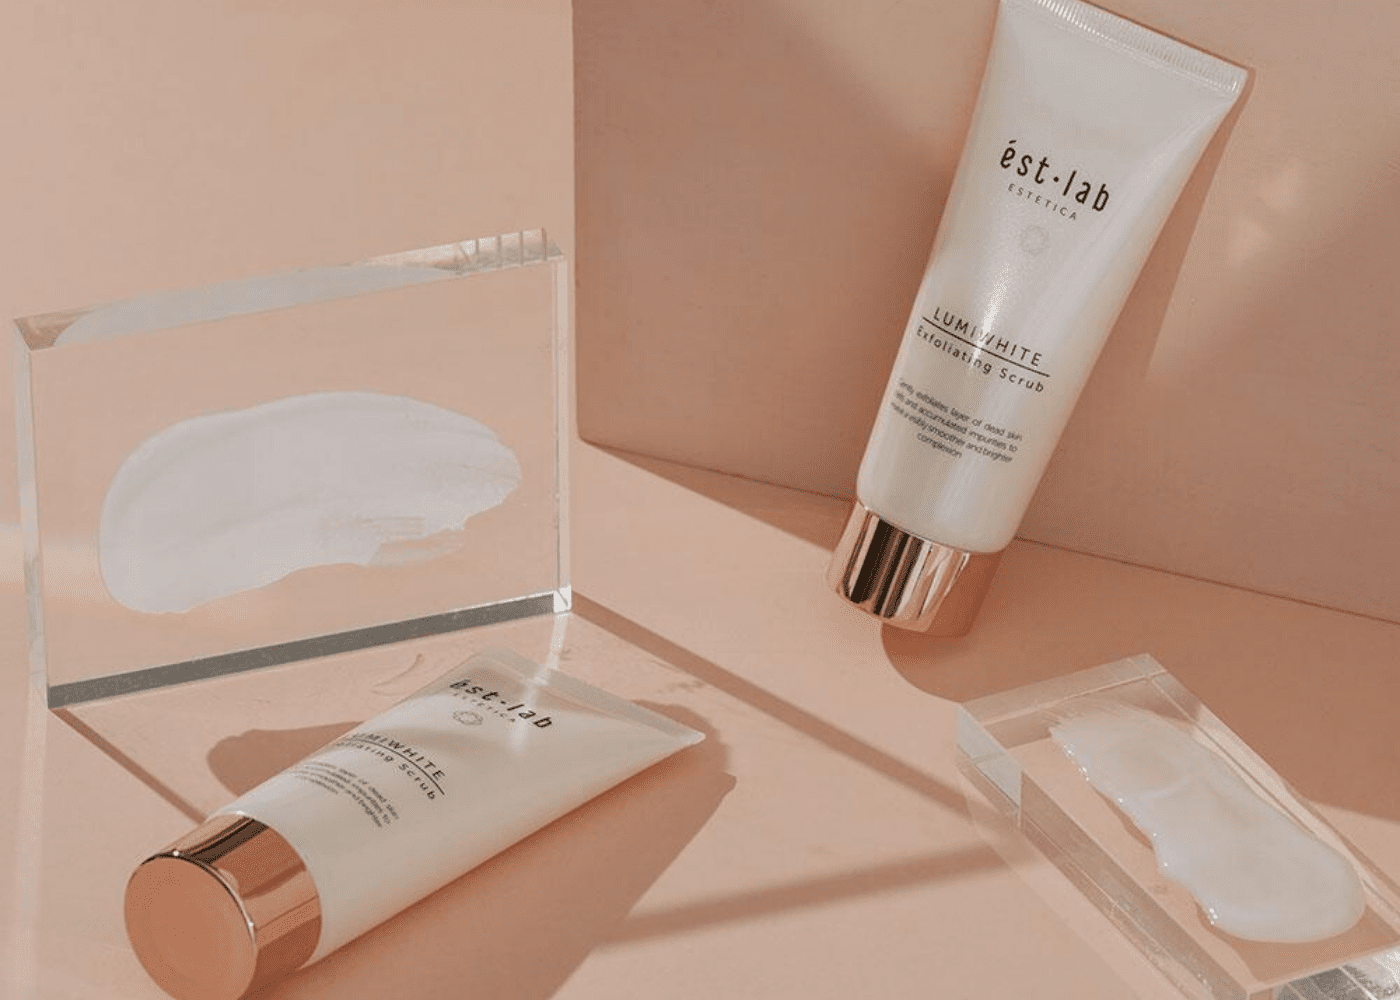 Est. Lab LumiWhite Exfoliating Scrub